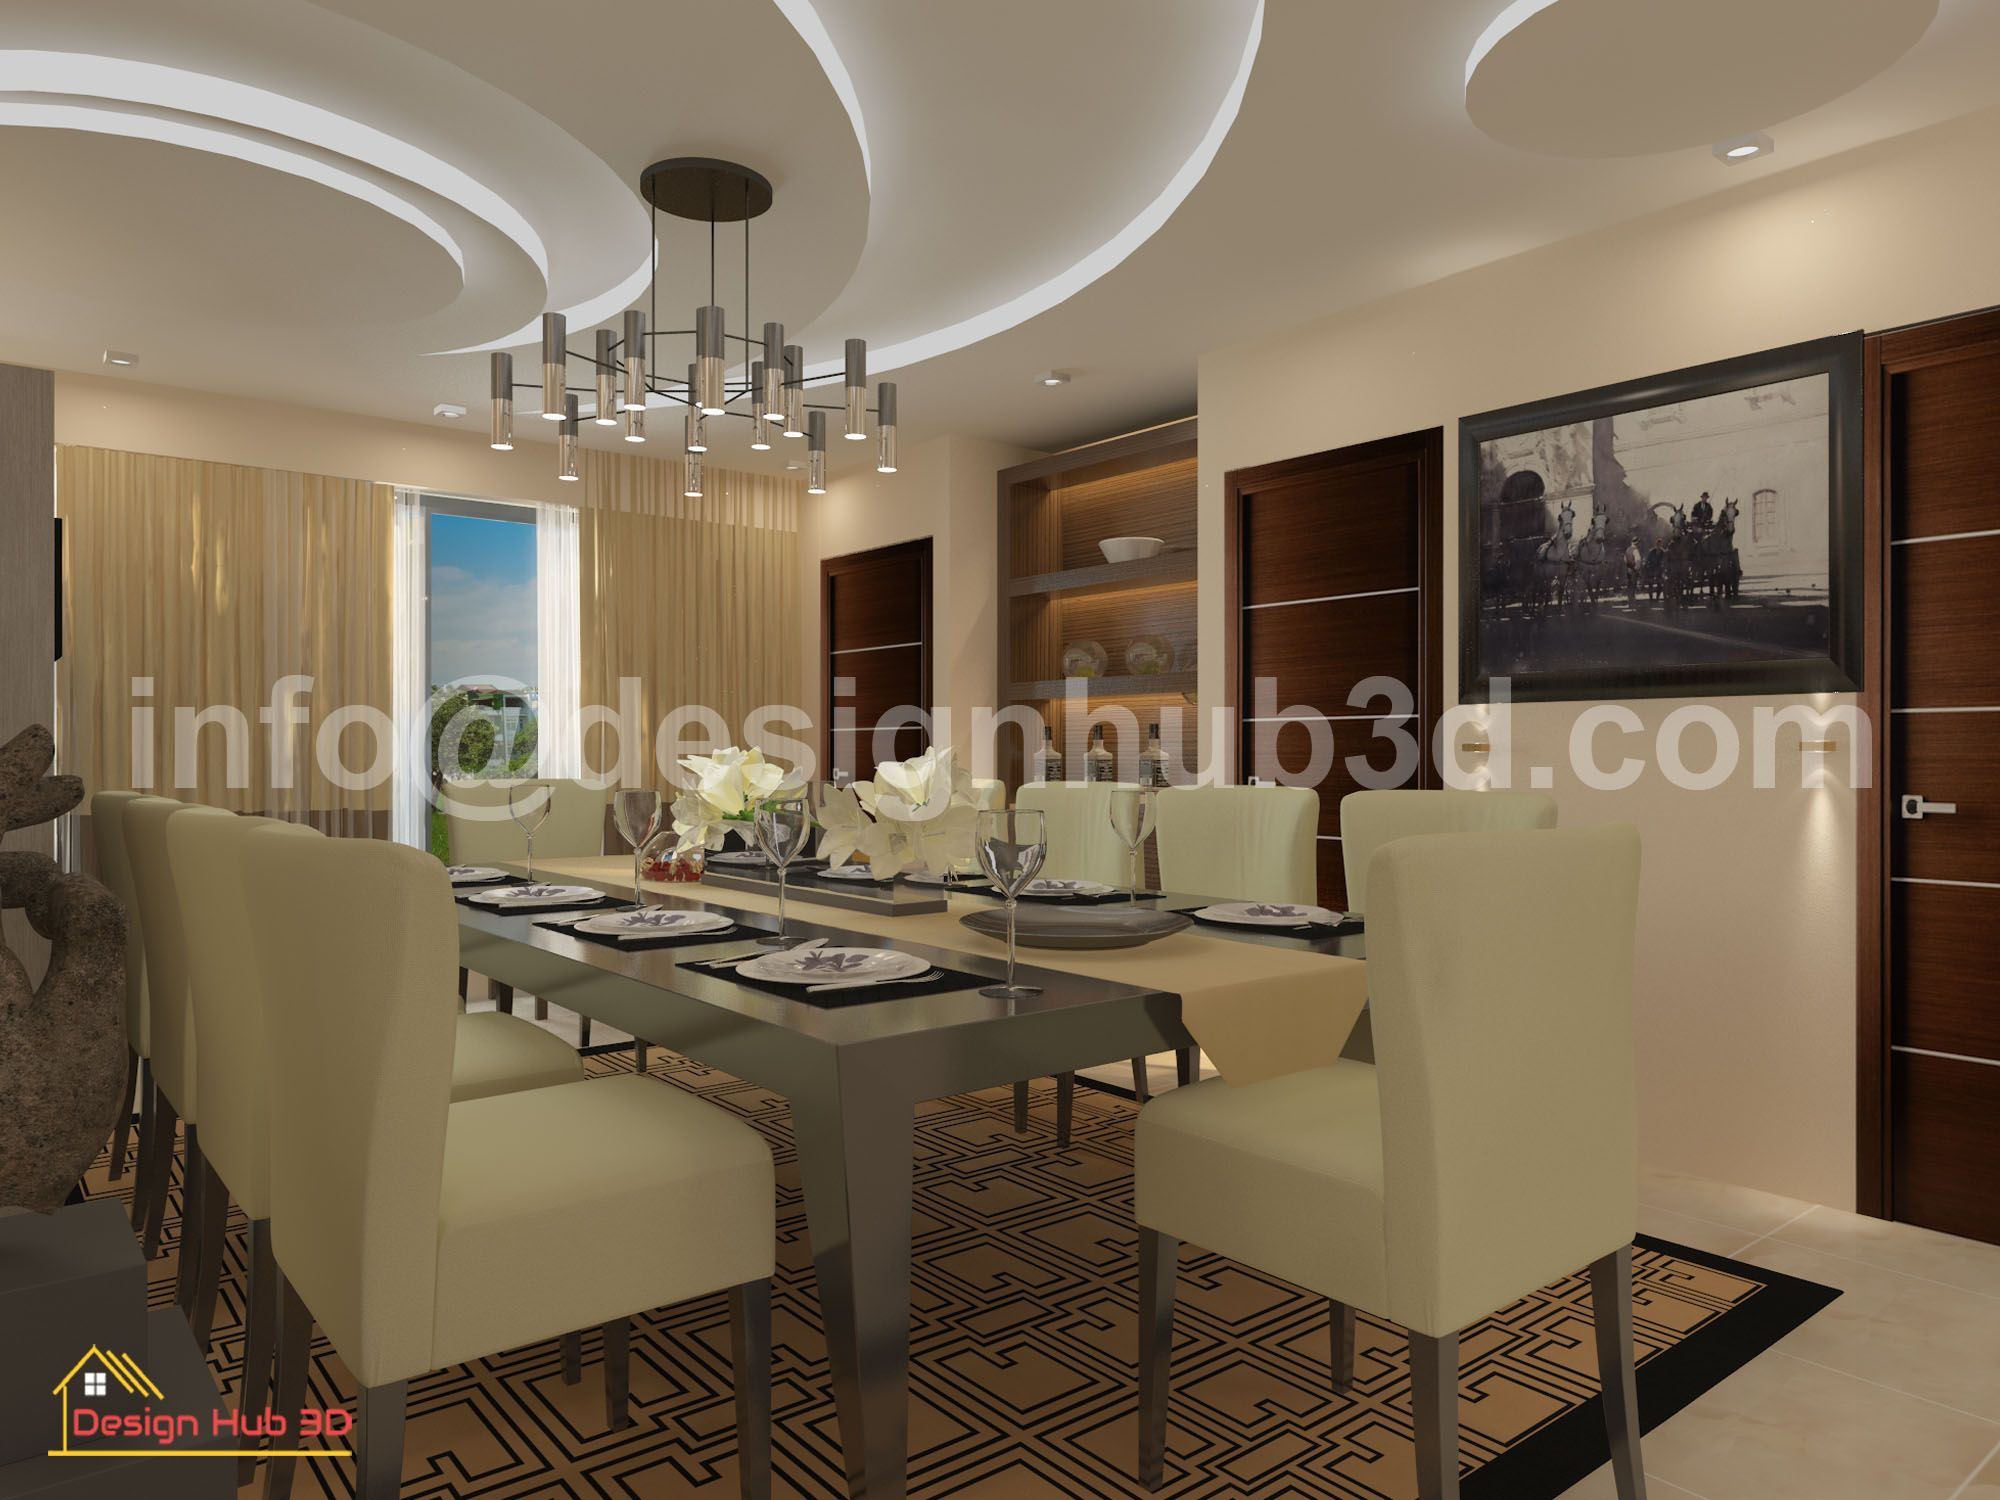 Design Hub 3D - Dining interior design